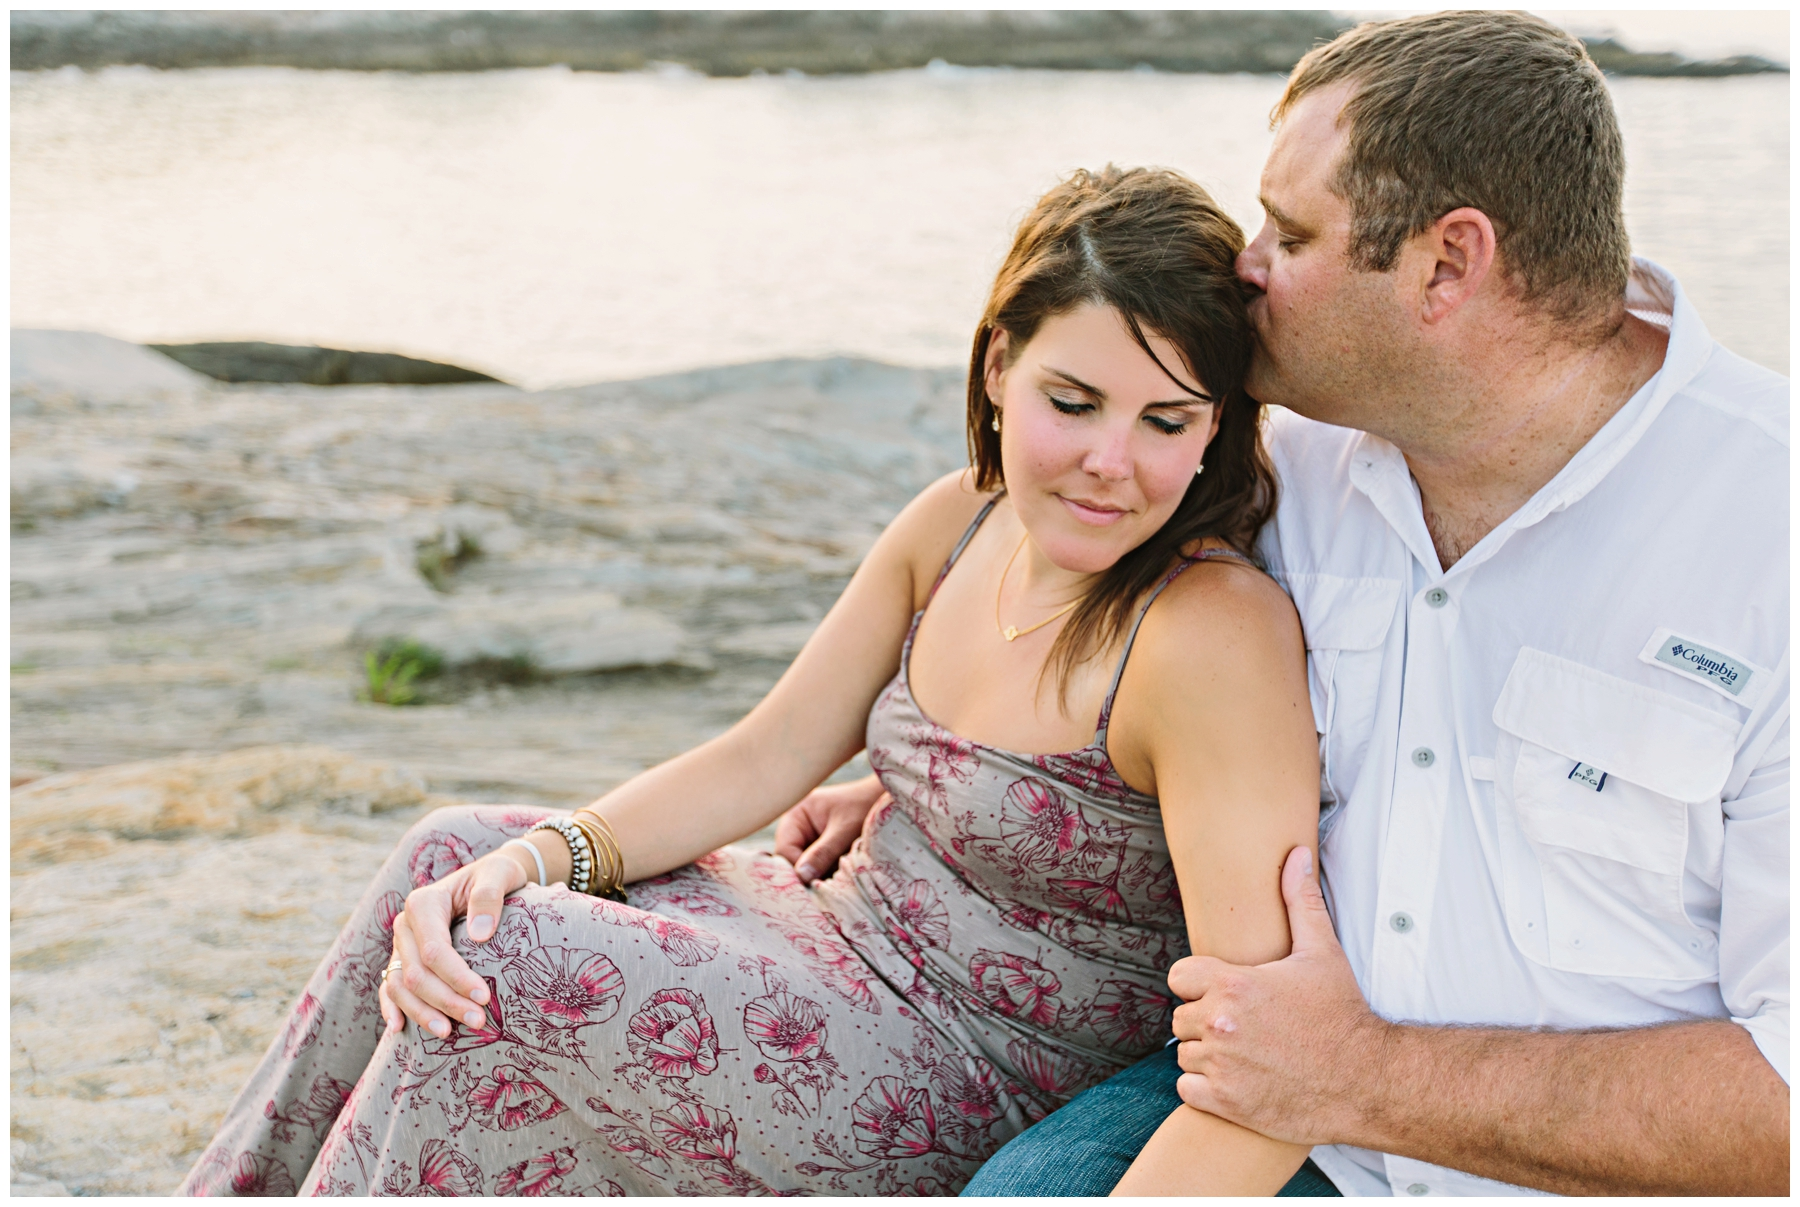 Maine_Photographer_Engagements_FortWilliams_PortlandHeadLight_lighthouse_coastal_seaside-025